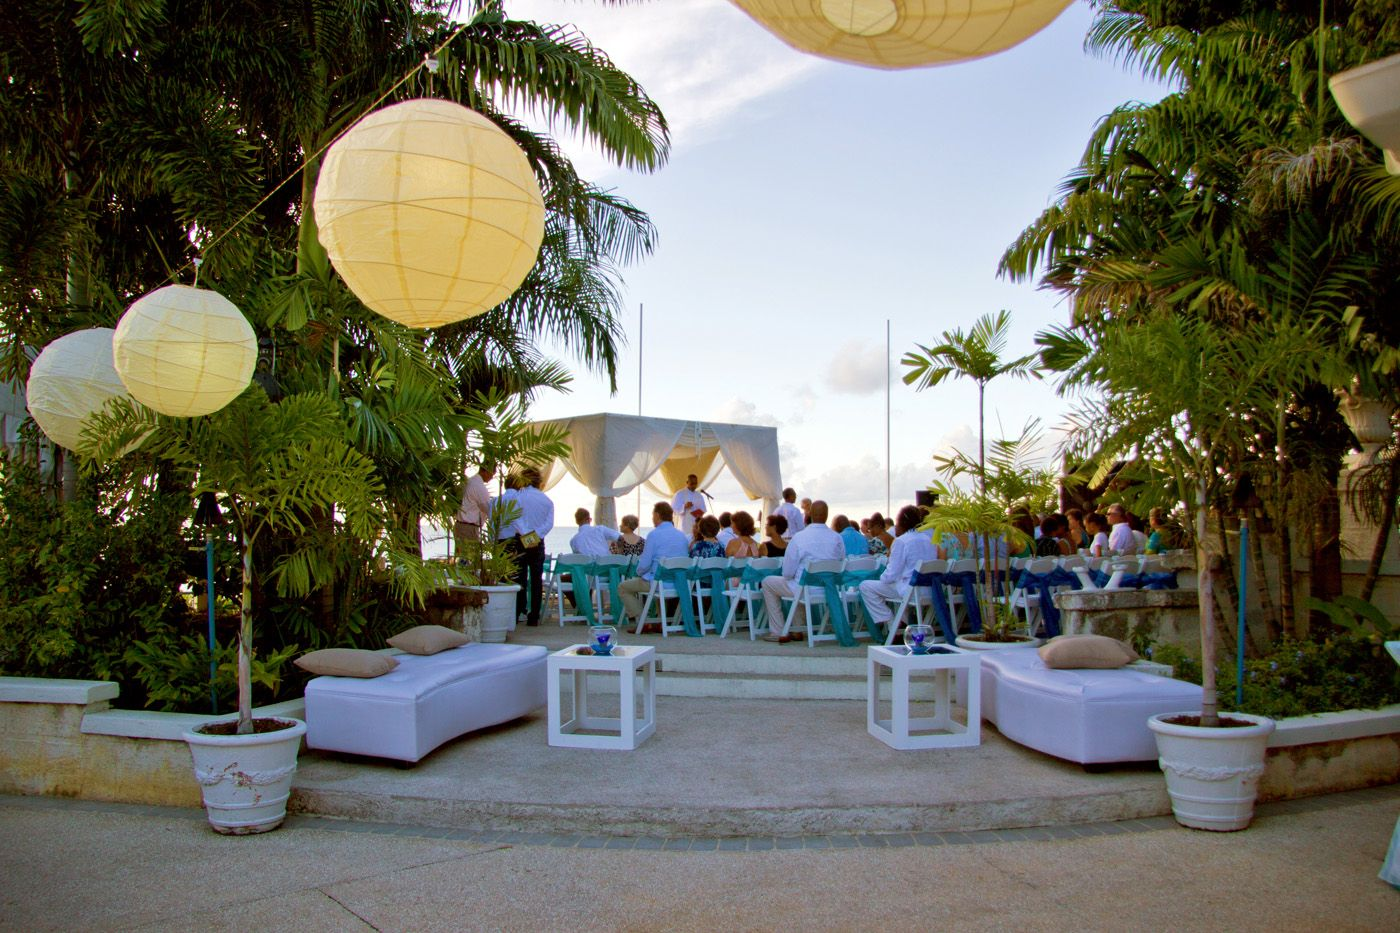 Emma Corrie Barbados Destination Wedding Venue And Ceremony Design